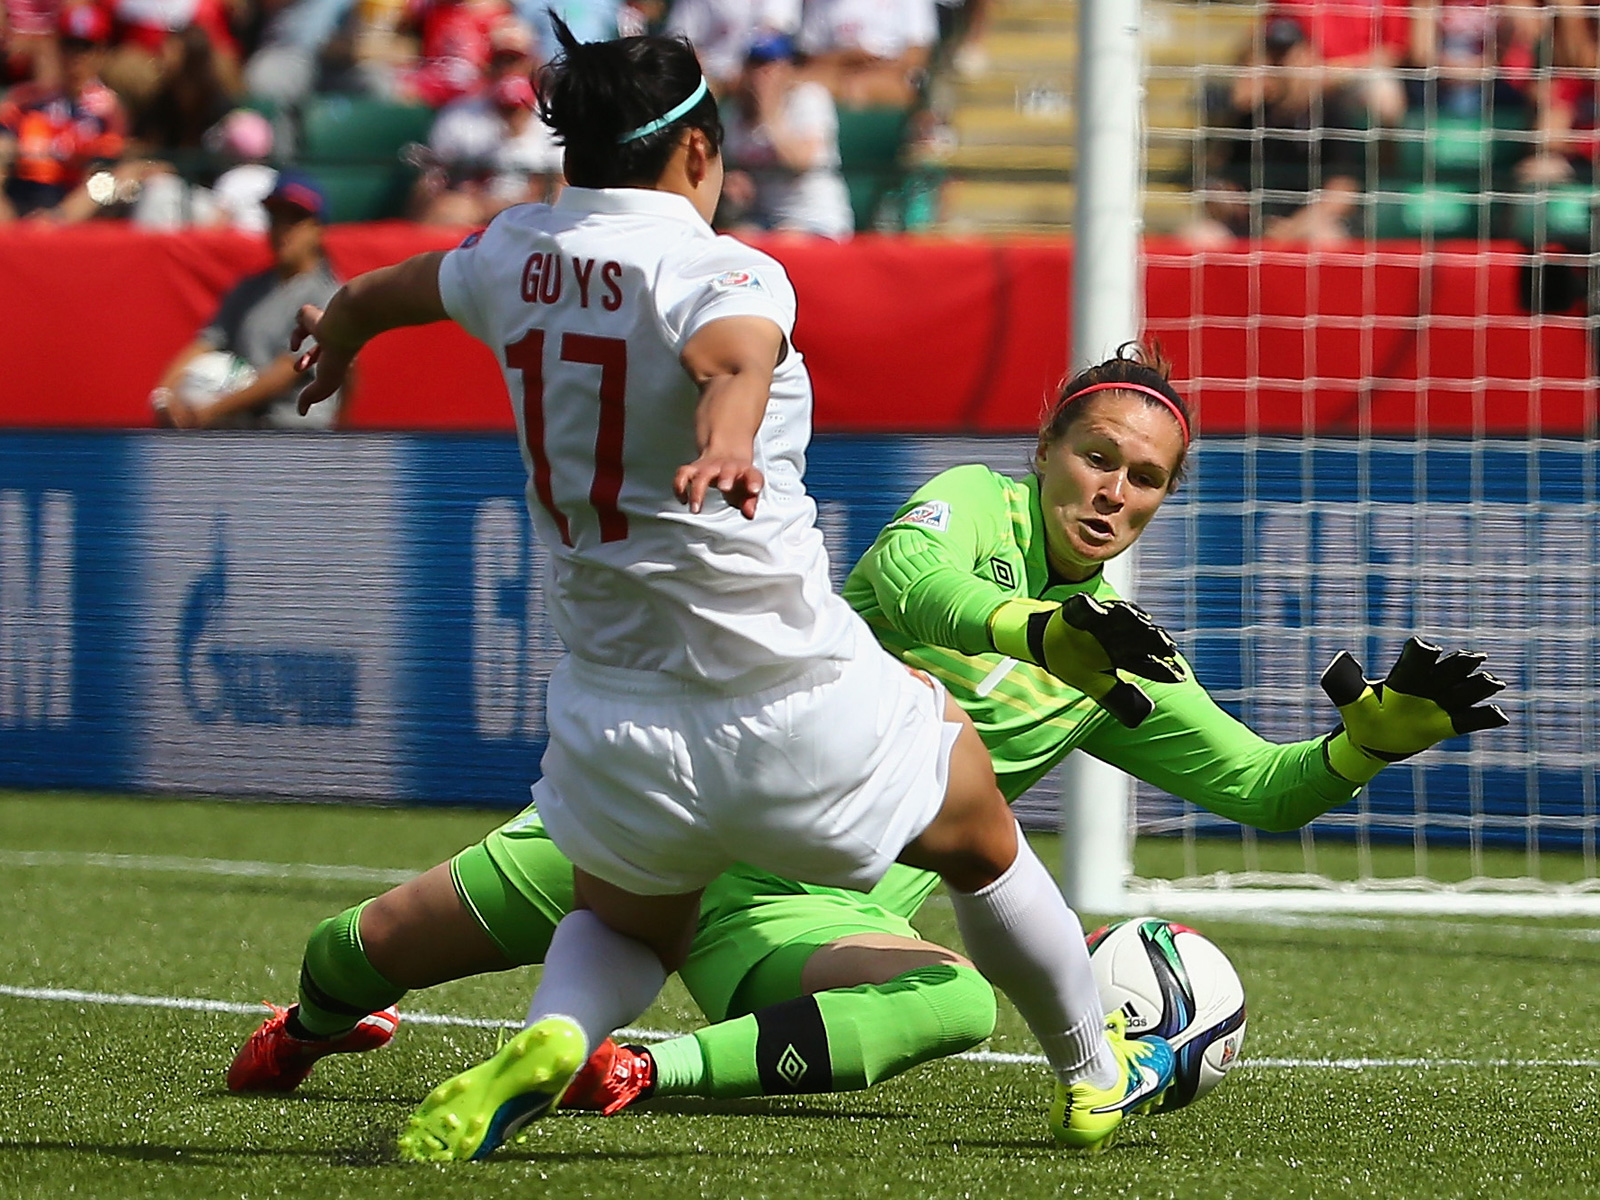 Canada goalkeeper Erin McLeod makes a first-half save on Gu Yasha to keep the upstart visitors off the board.